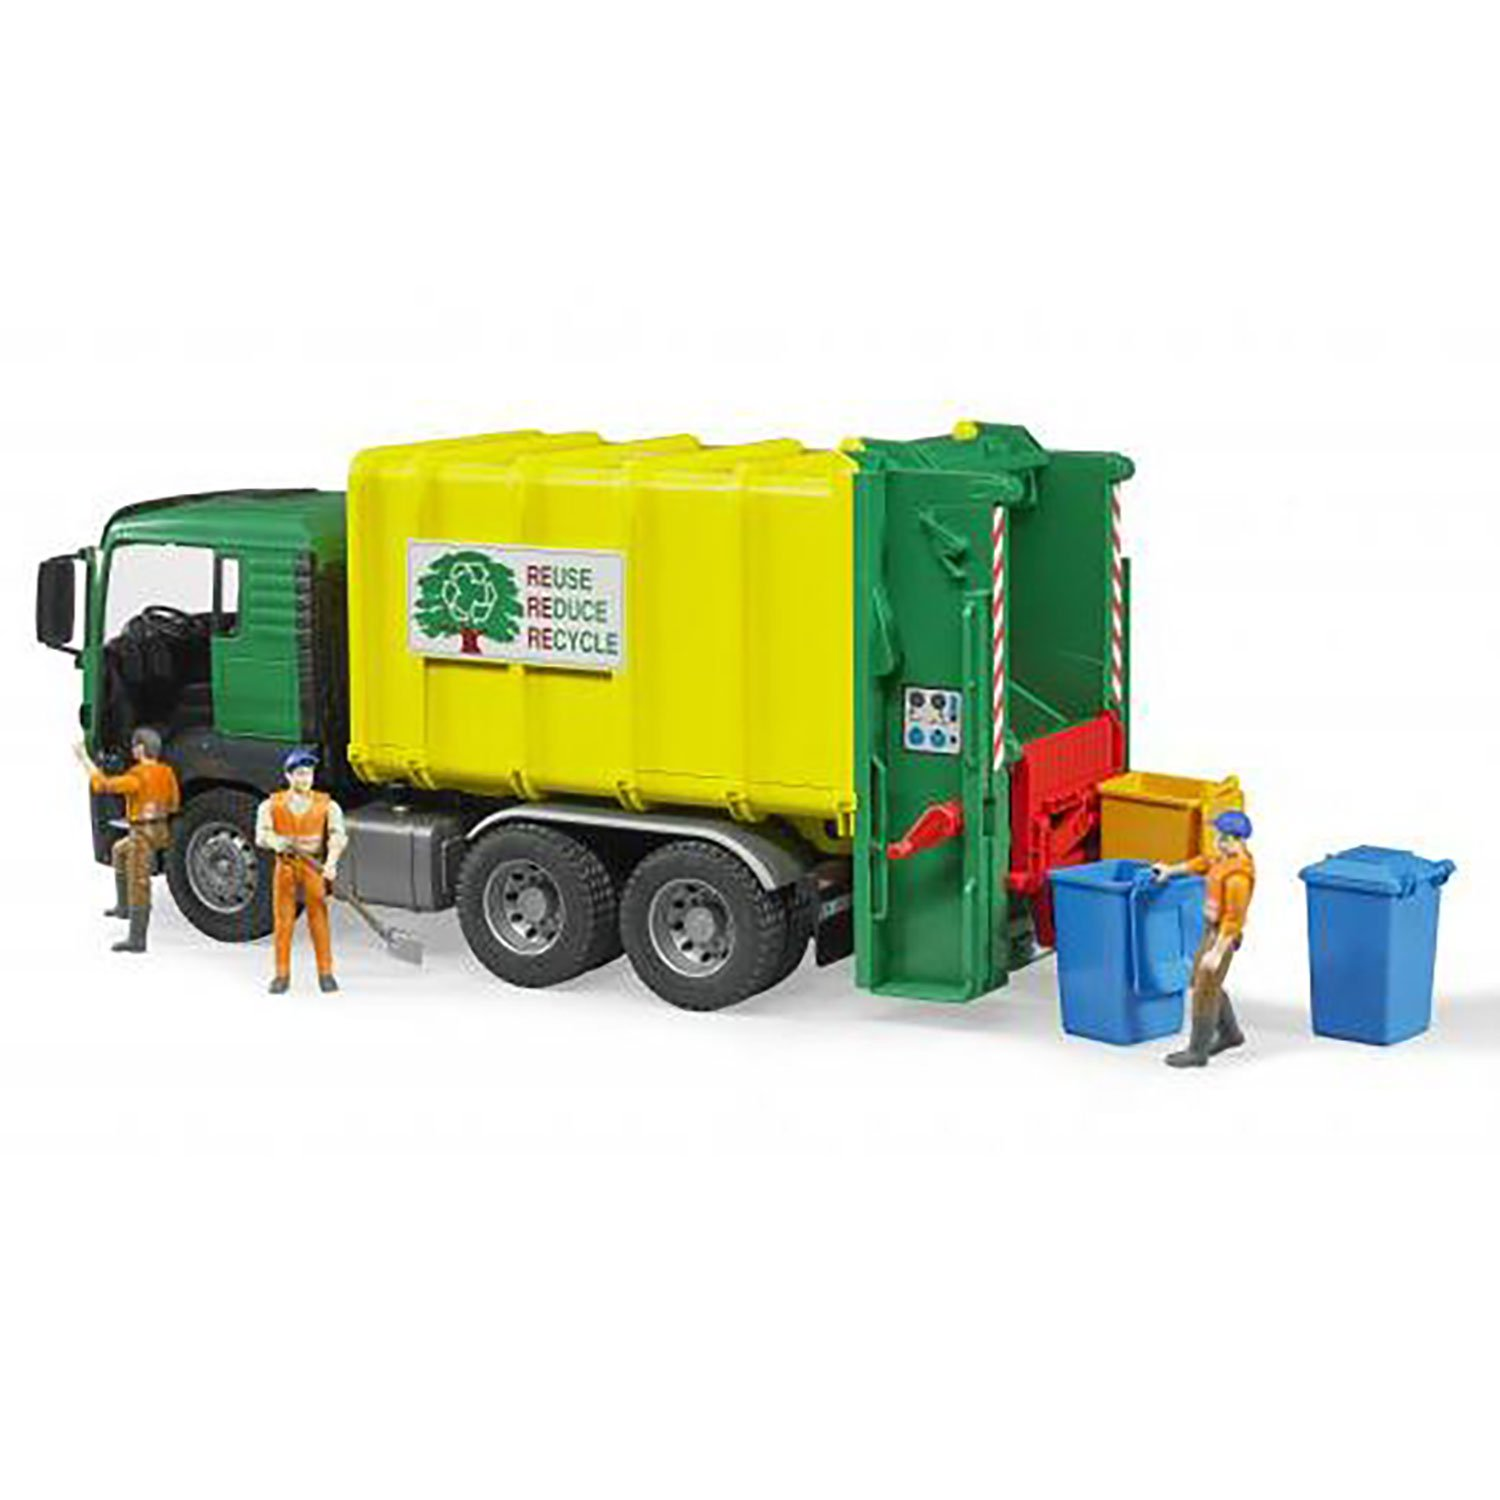 Bruder Toys MAN TGS Rear Loading Garbage Waste Toy Truck Vehicle 3 Refuse Bins by Bruder Toys